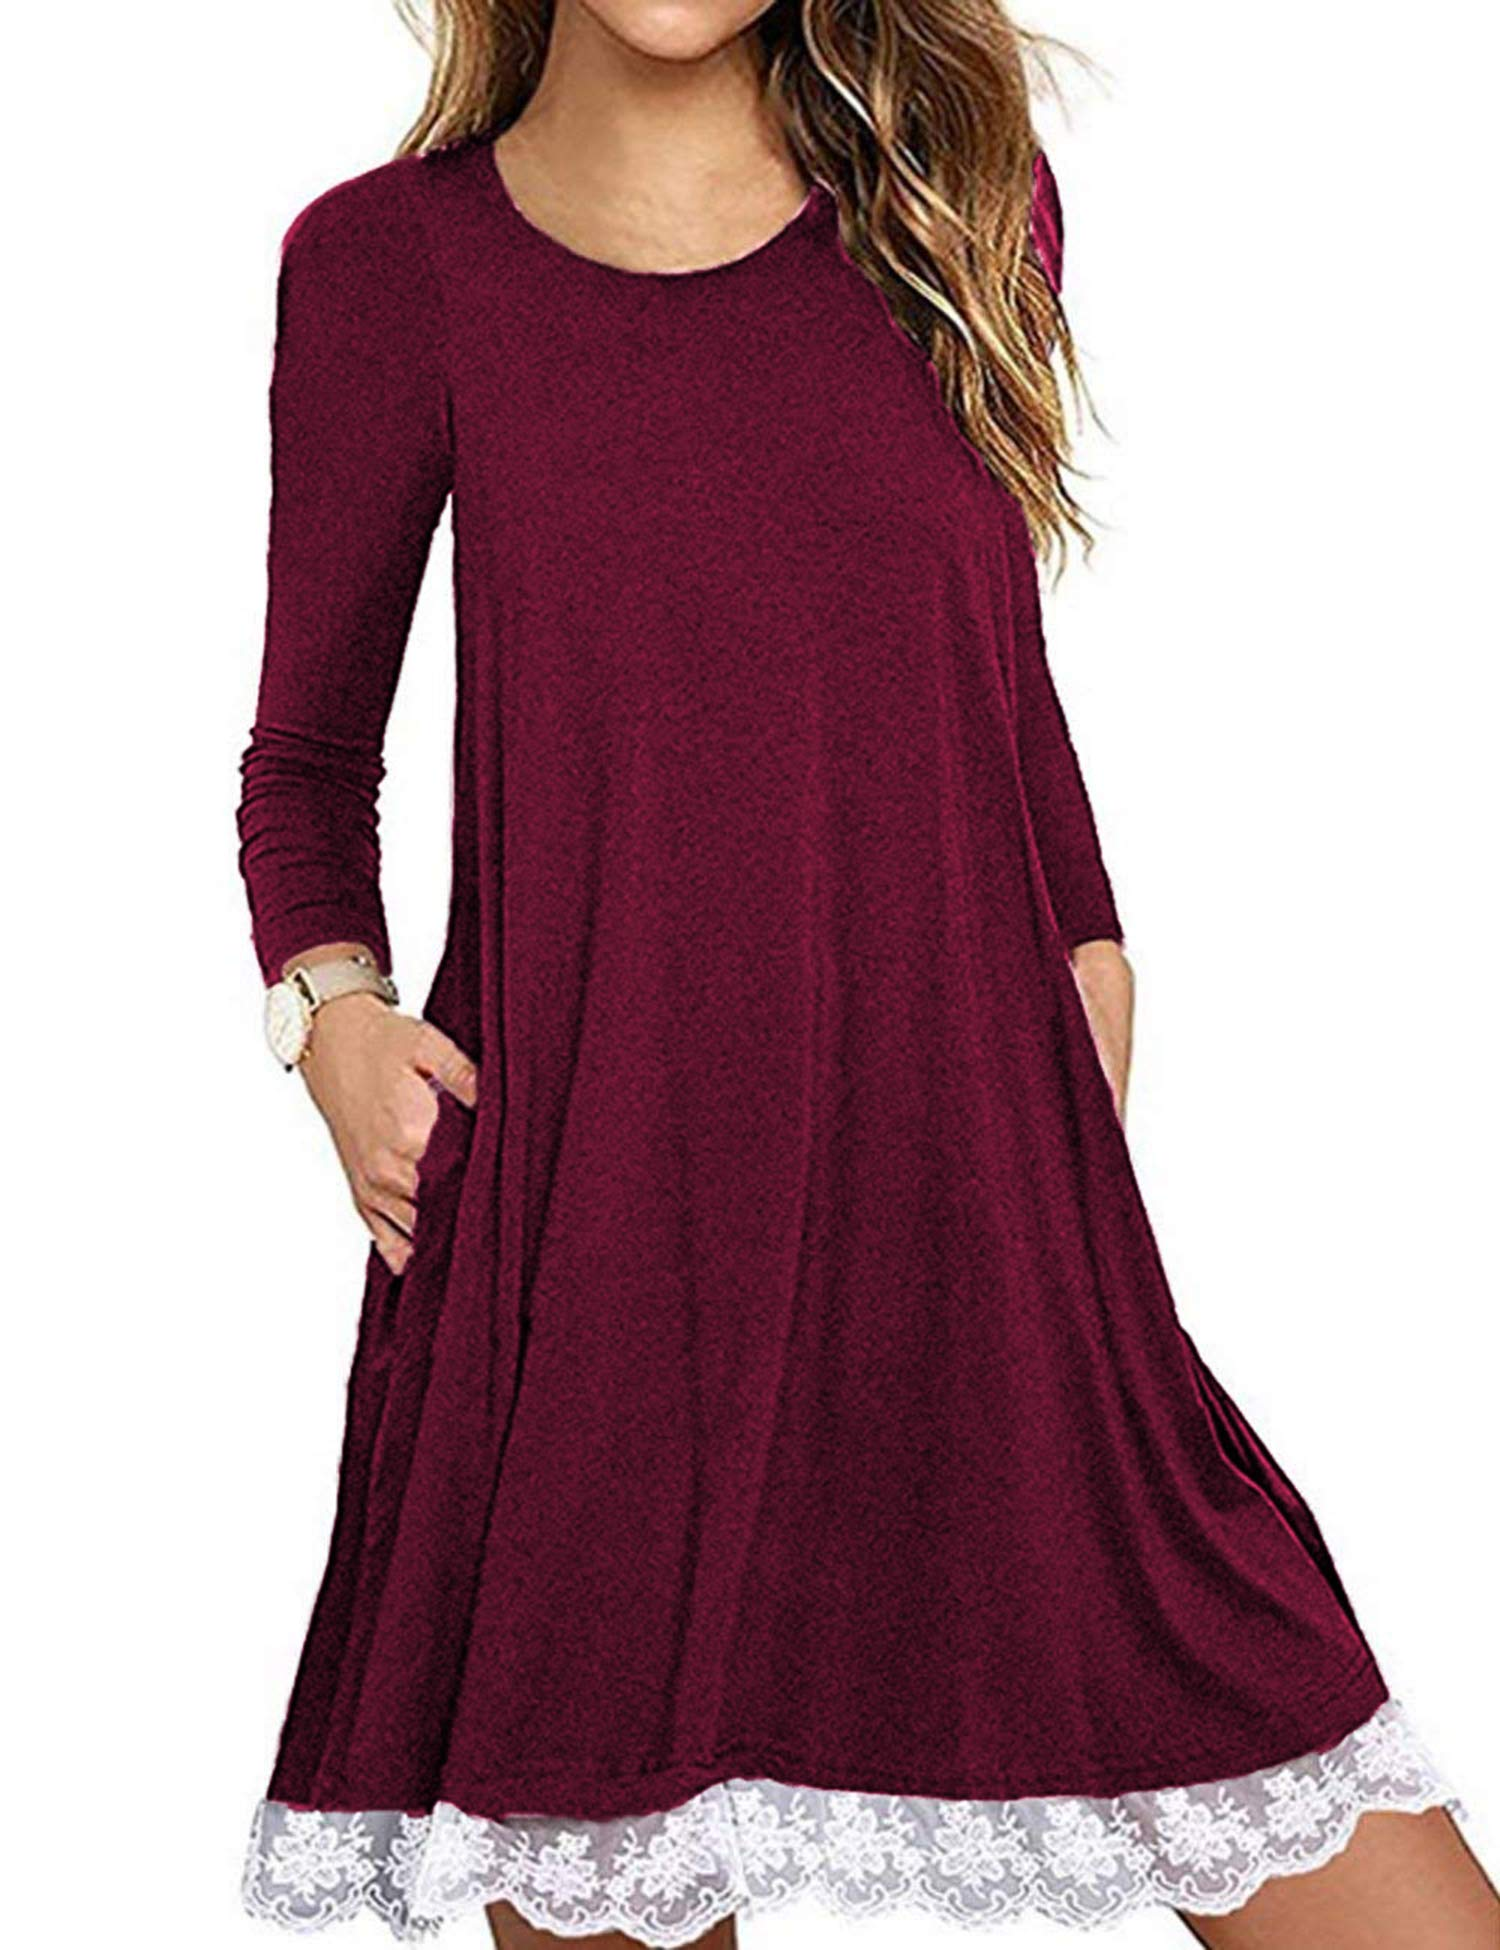 FISOUL Women's Casual Lace Tunic Dress Loose T-Shirt Dress with Pockets Wine Red L